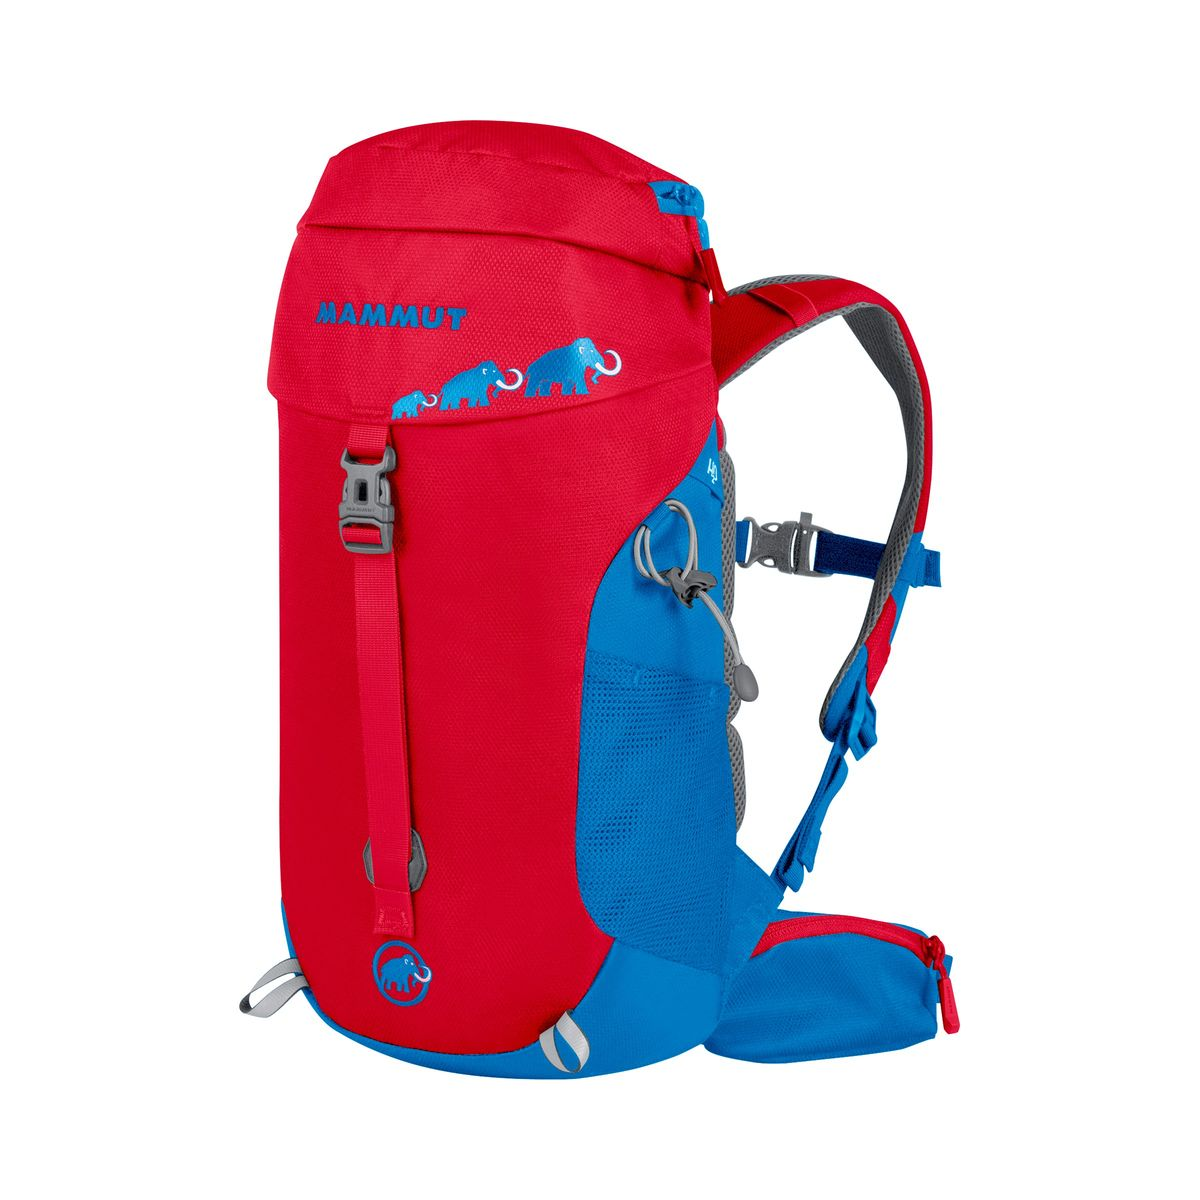 Mammut First Trion 12 L - Kinder Wanderrucksack